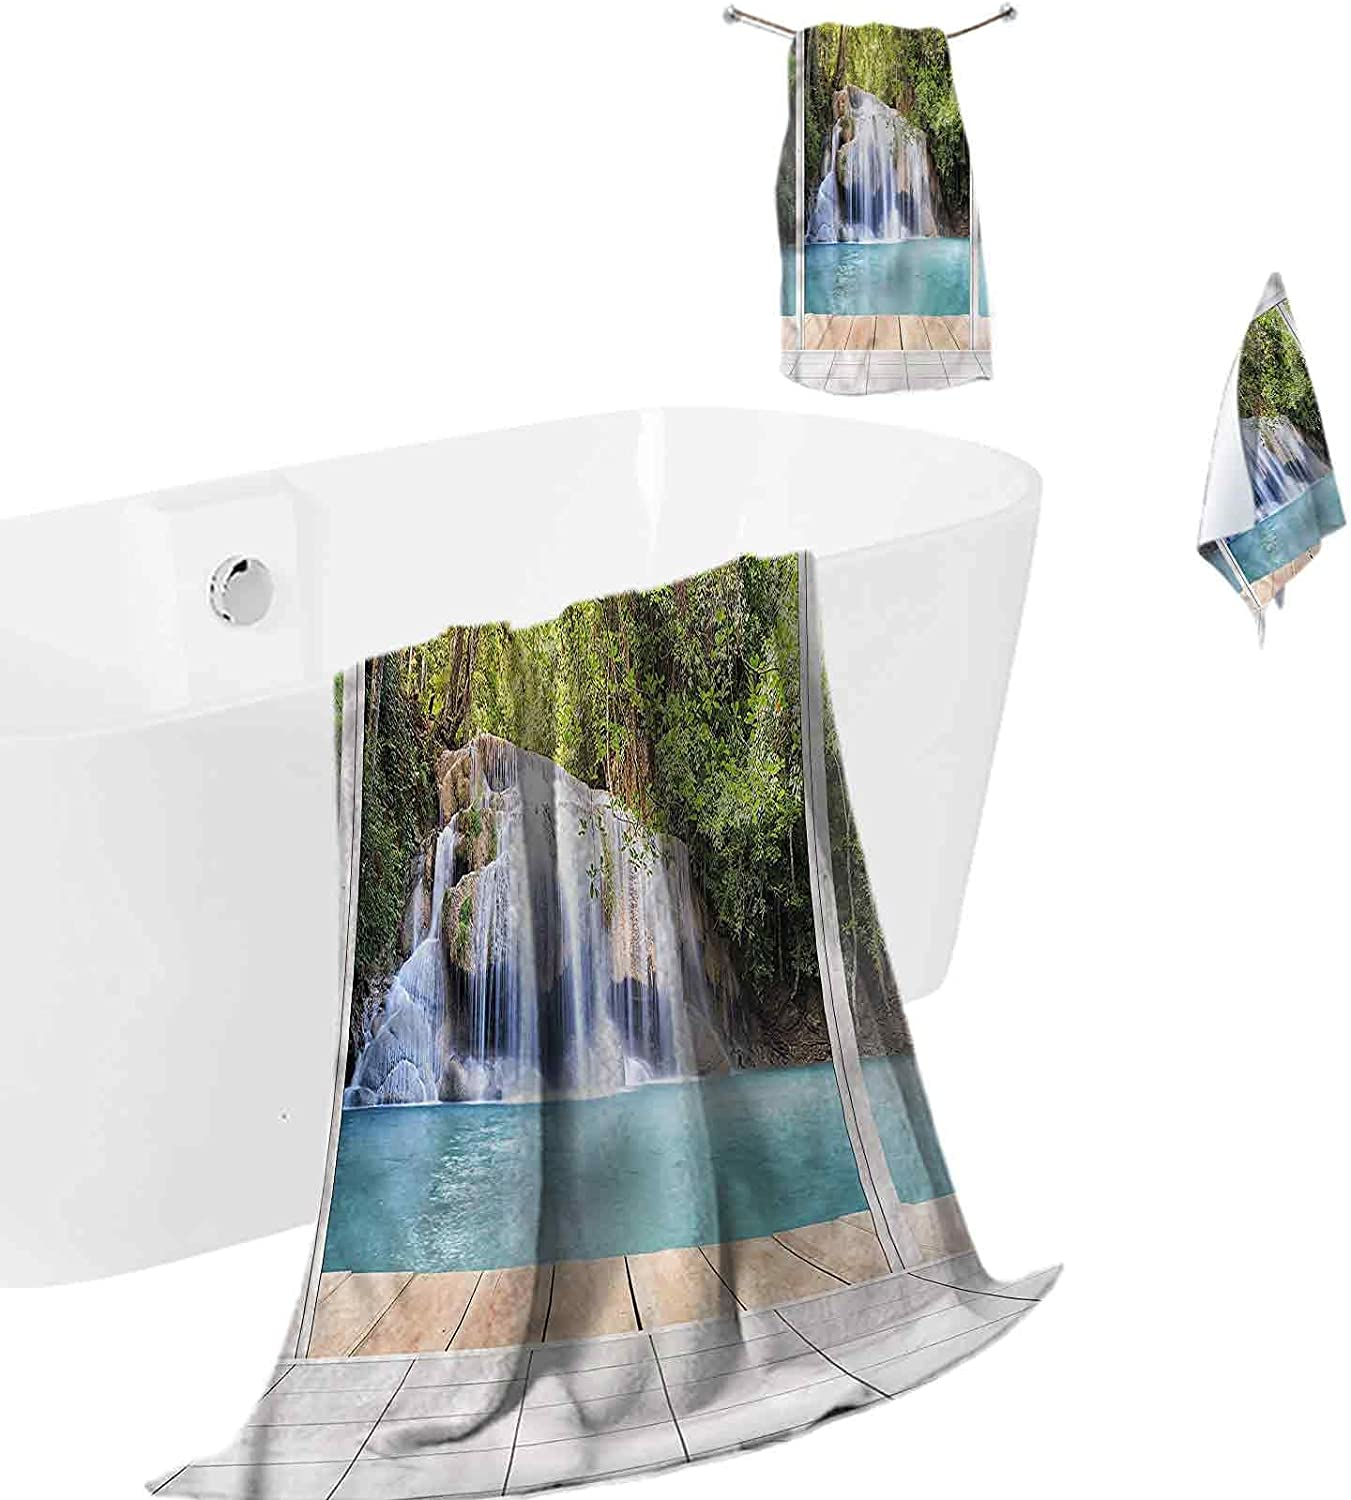 3 Piece Bath Towel unisex Set Absorbent Max 65% OFF Nature wit Quick-Dry Waterfall